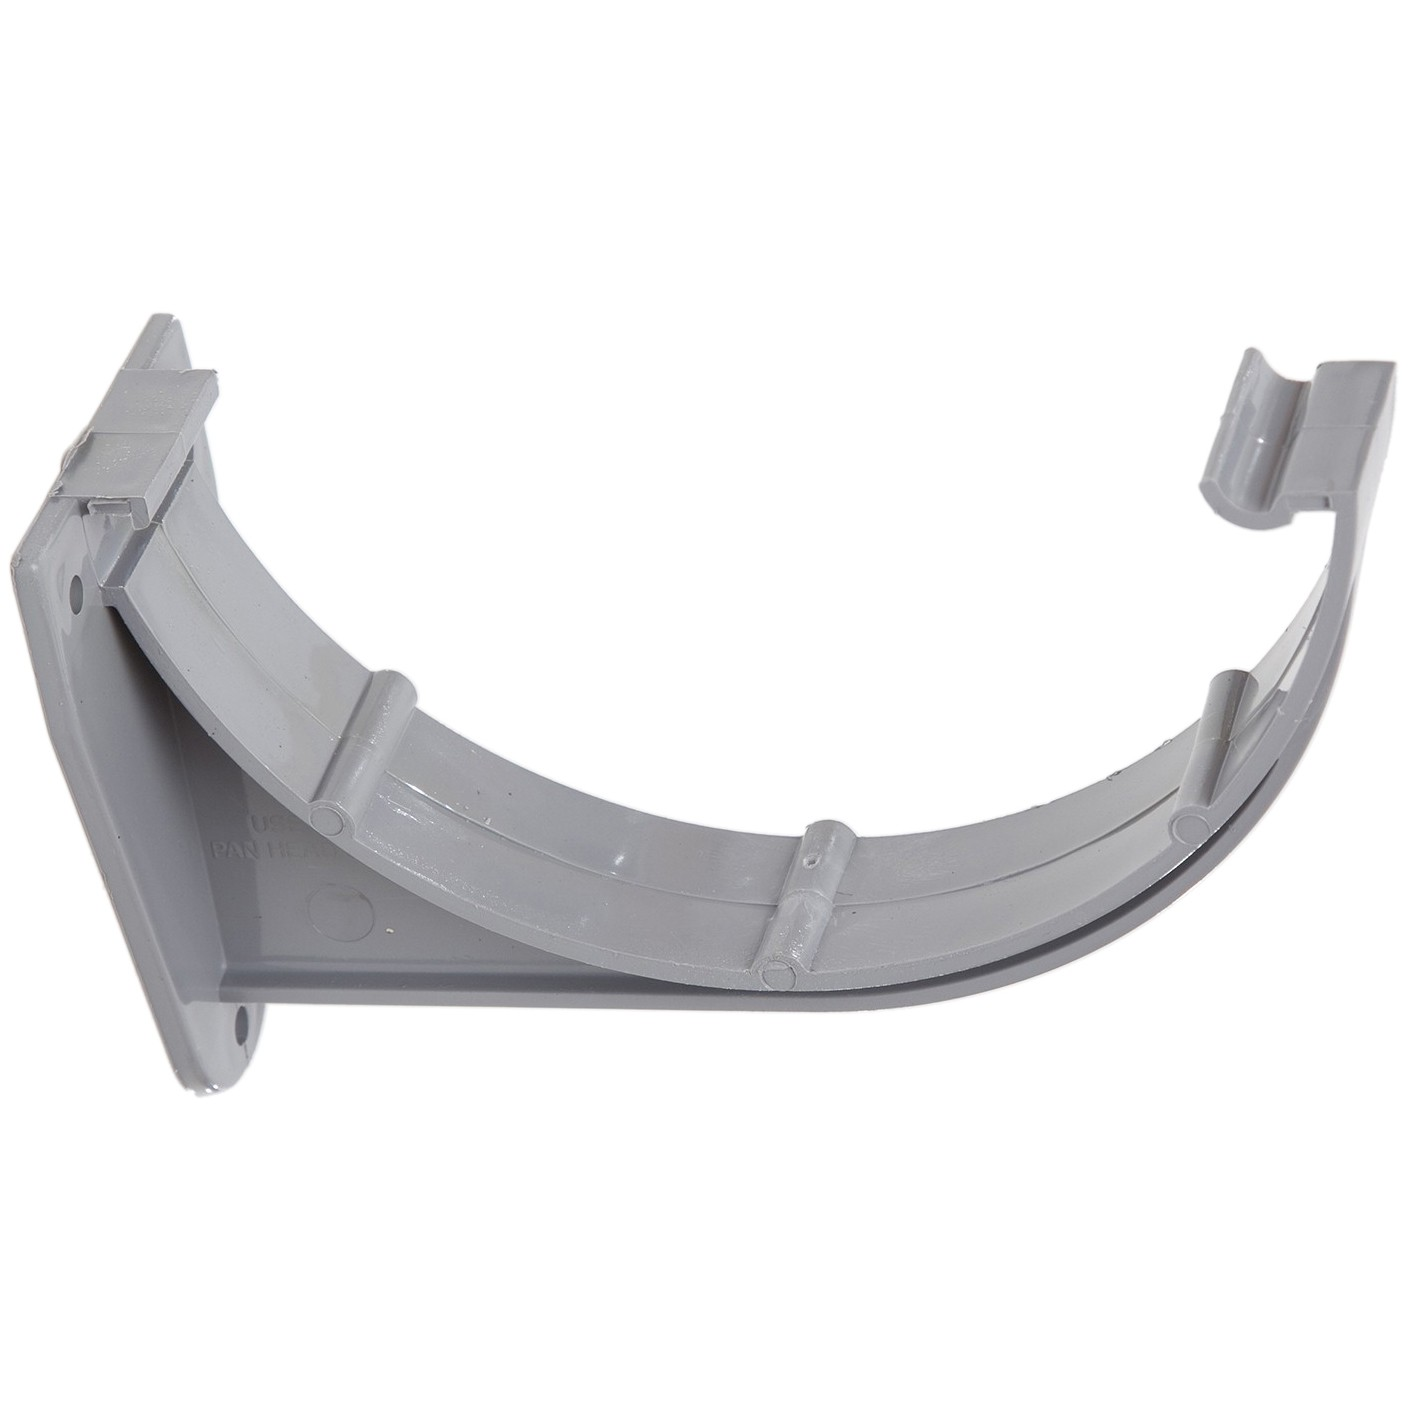 Polypipe 150mm Large Half Round Gutter Fascia Bracket - Grey